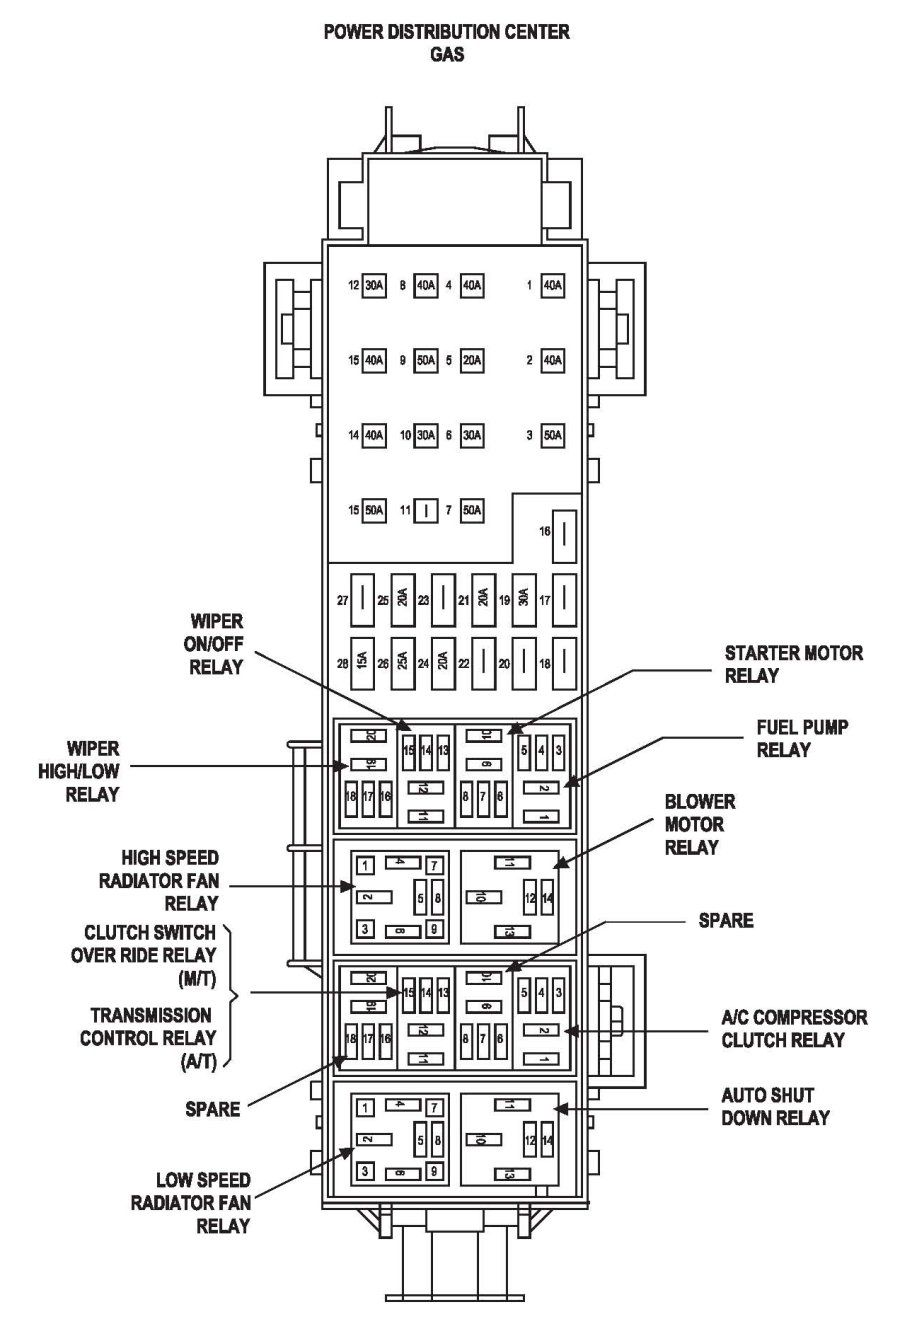 jeep liberty fuse box diagram image details jeep liberty auto fuse box wiring diagram auto fuse box diagram [ 900 x 1336 Pixel ]